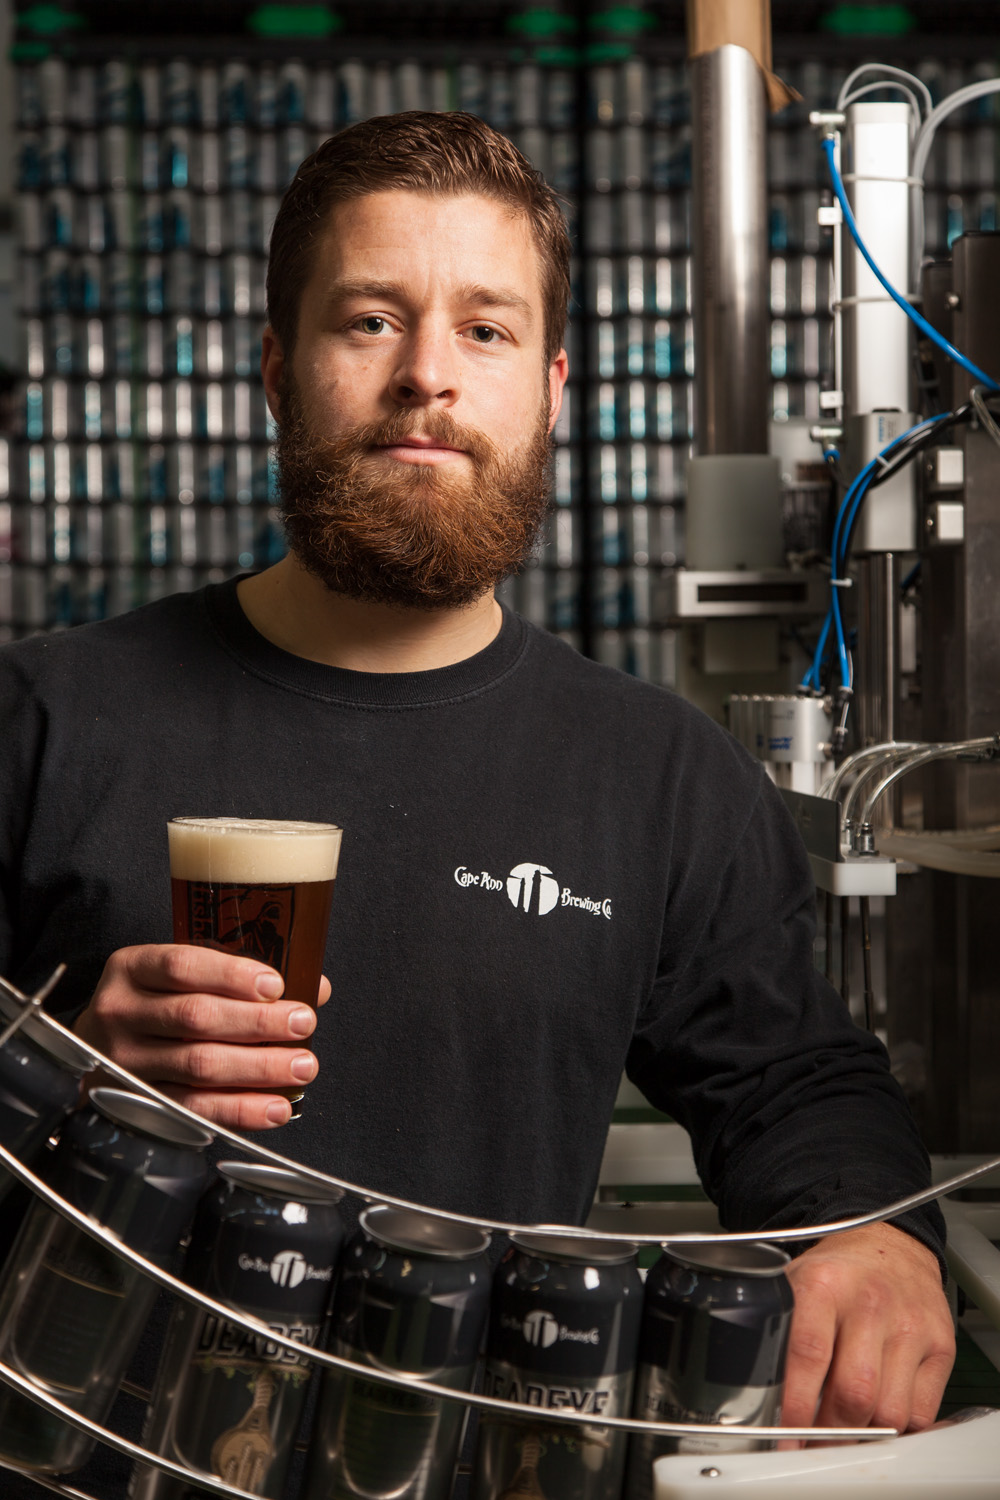 Brian Fines, Brewer Cape Ann Brewing Co. Gloucester, MA Established in 2004